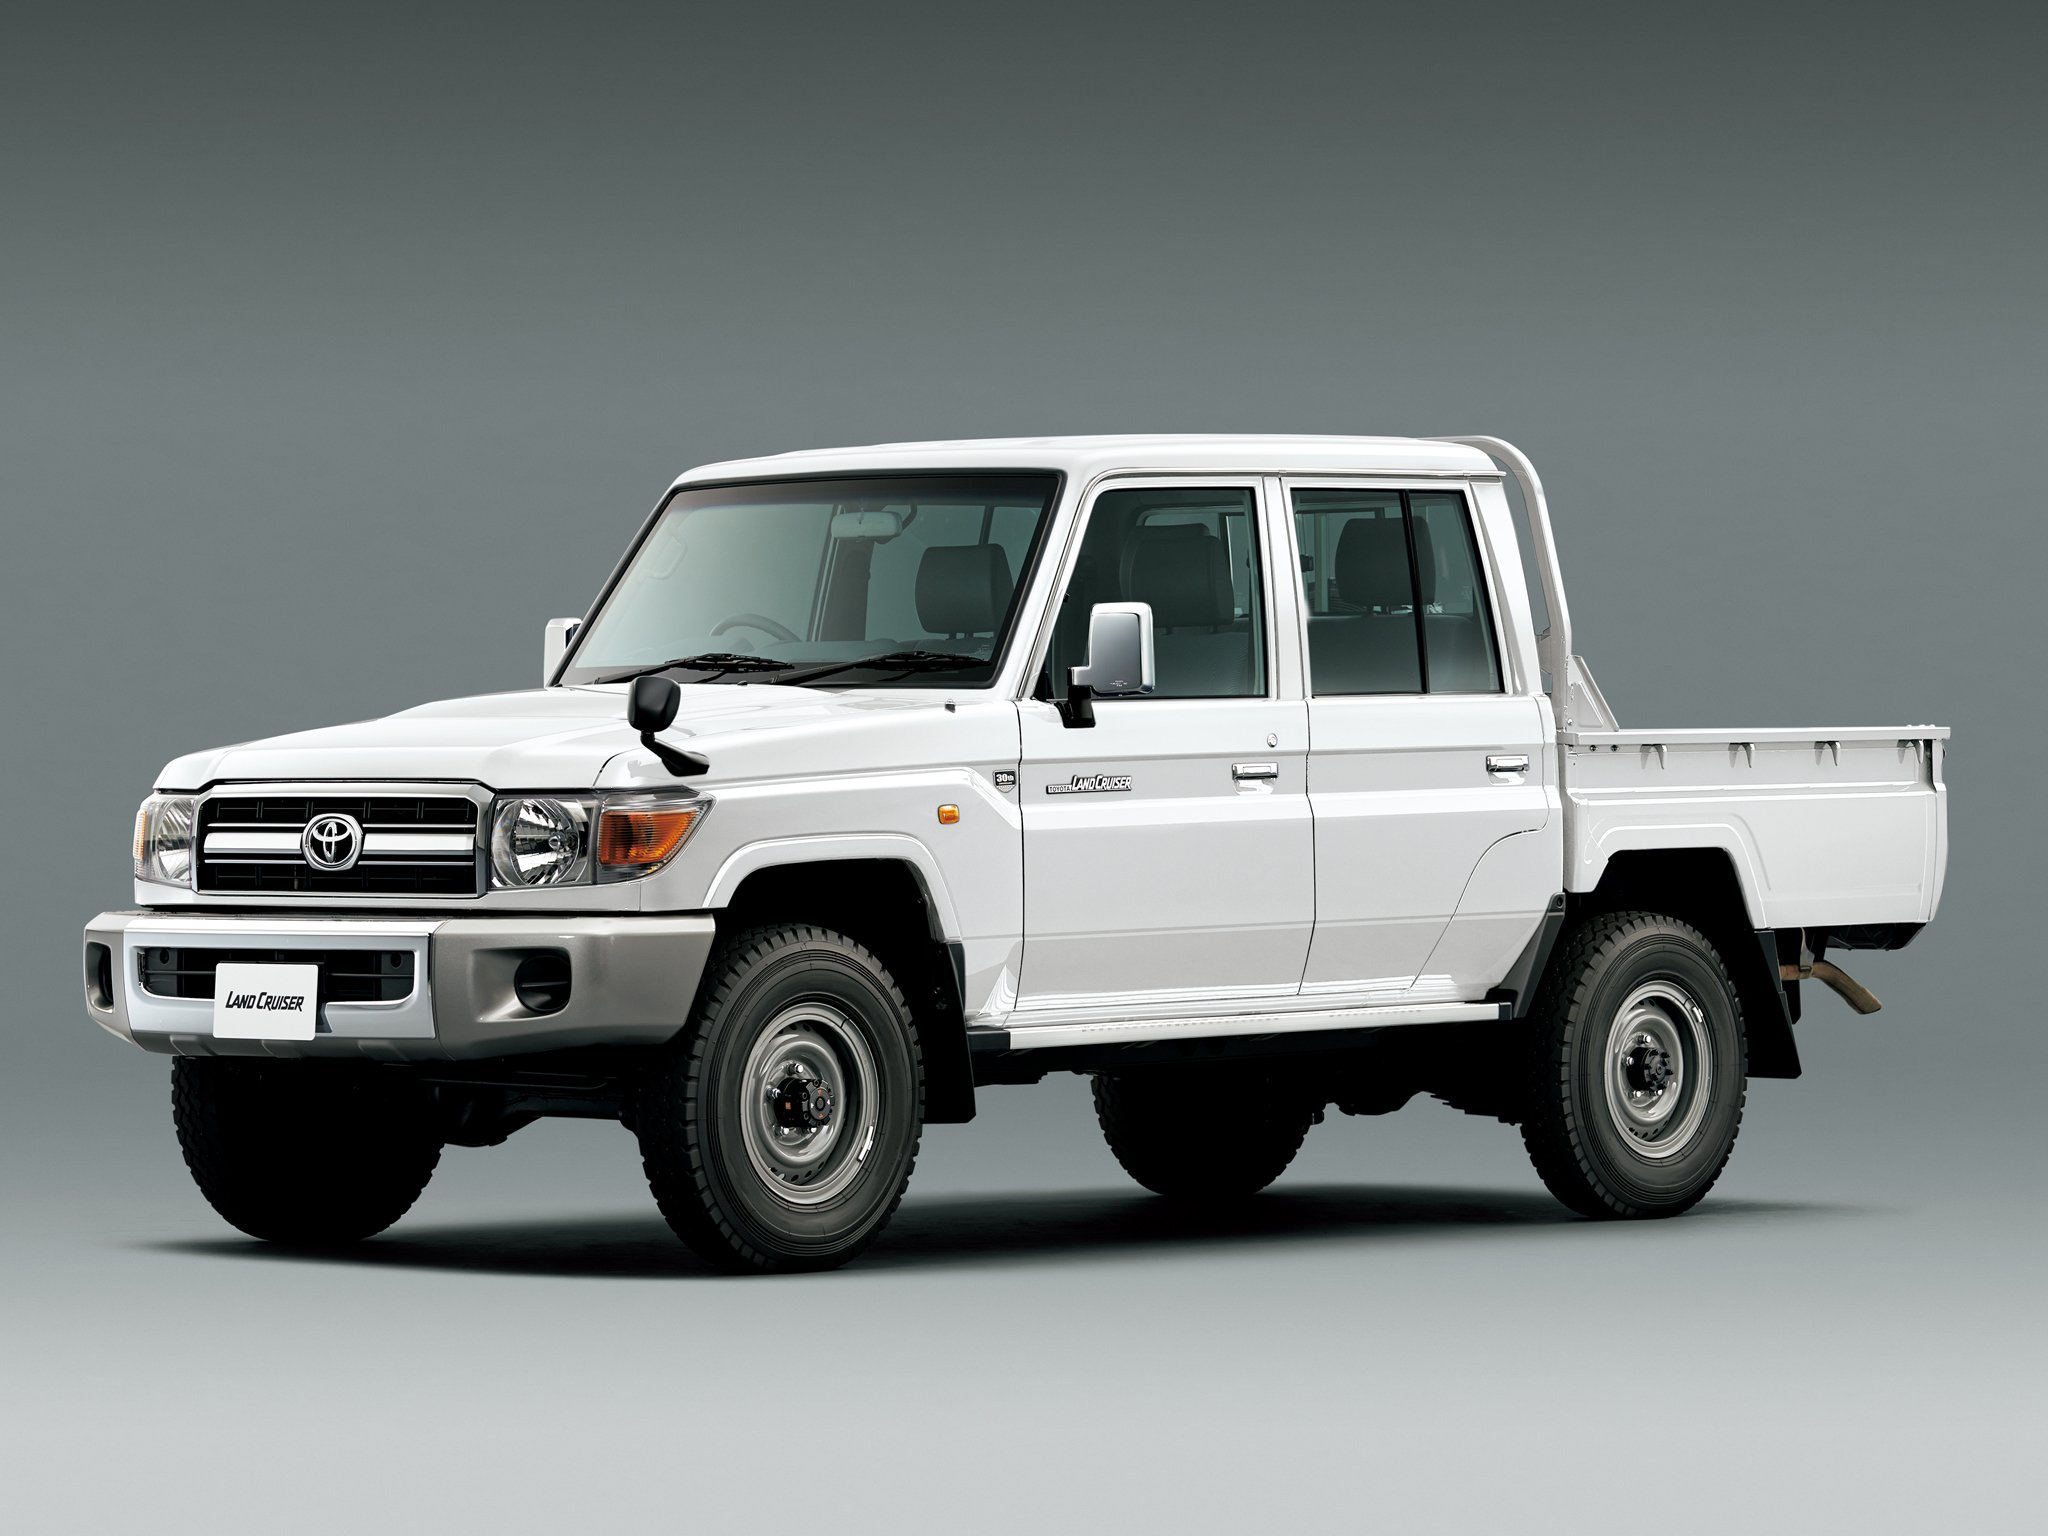 2015 toyota land cruiser pickup 30th anniversary jp spec grj79k 4x4 wallpaper 2048x1536. Black Bedroom Furniture Sets. Home Design Ideas